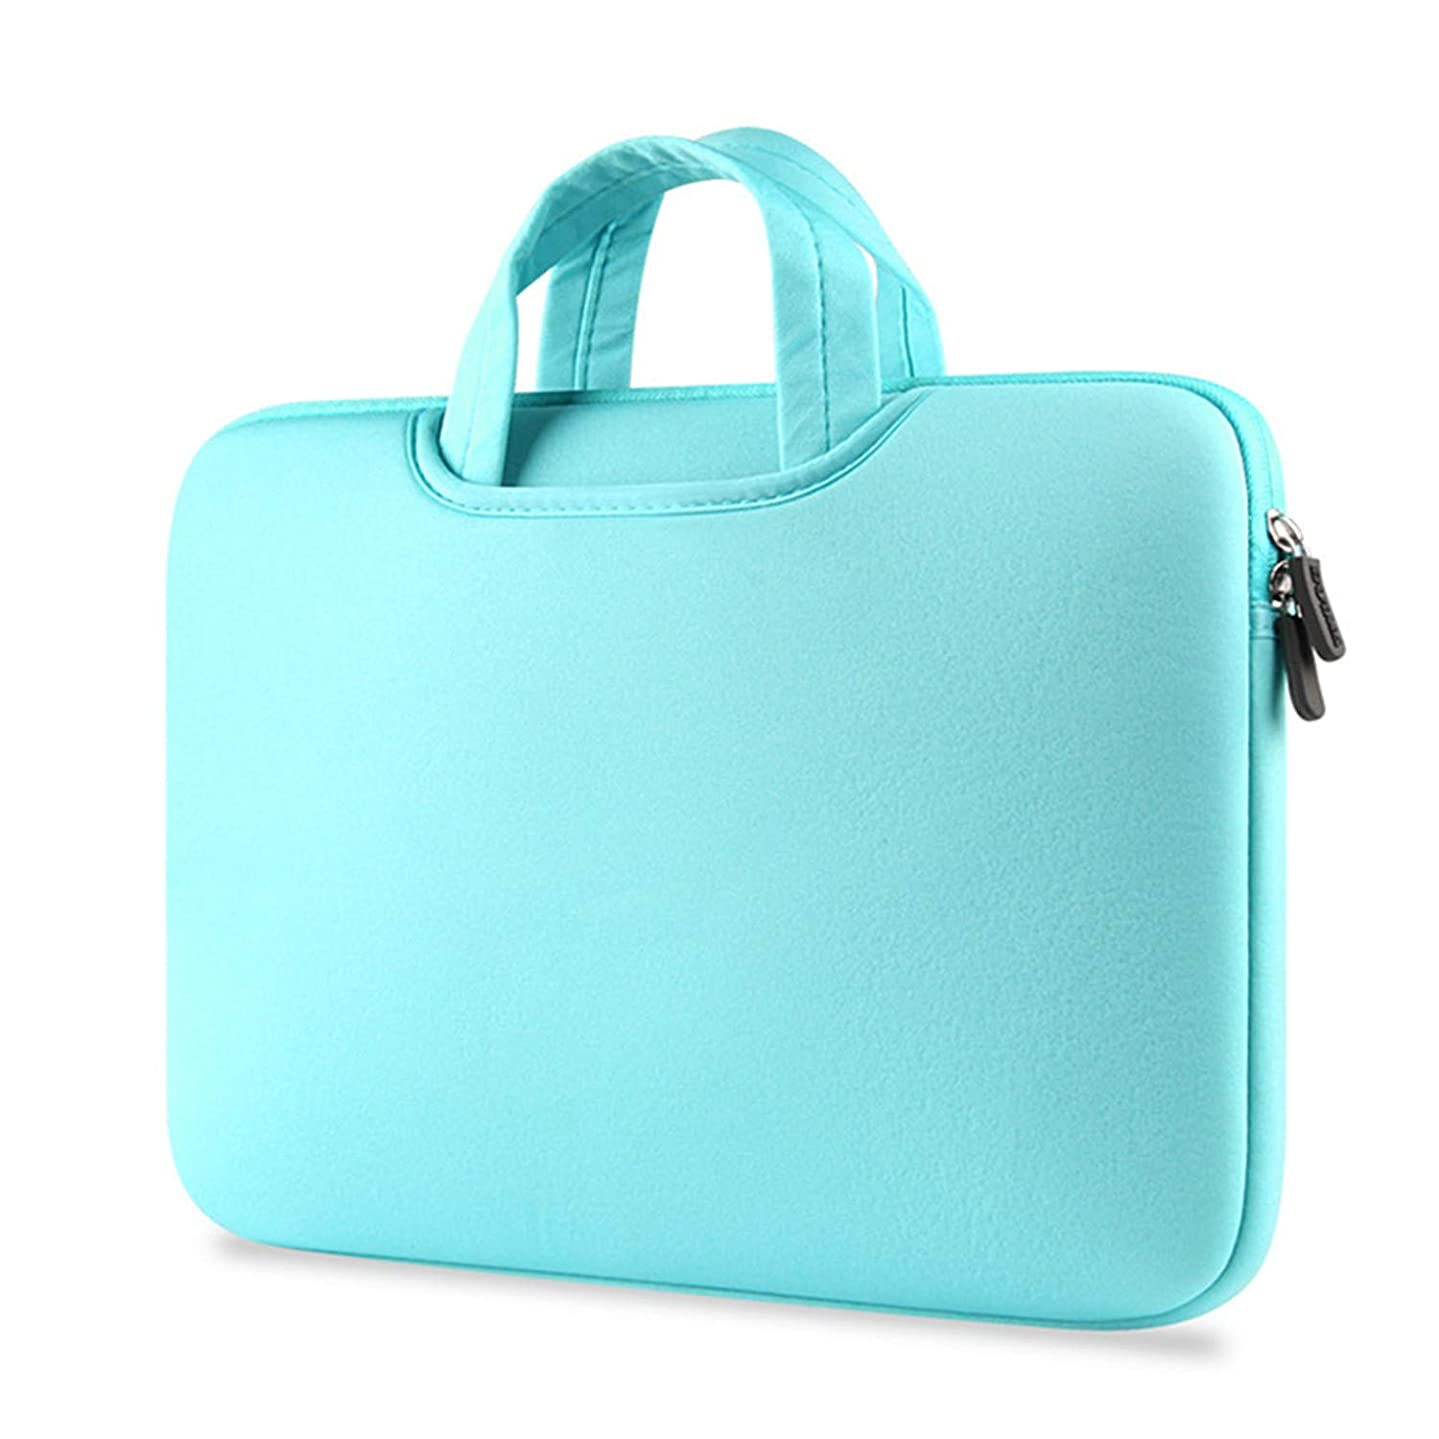 12 13 15 15.6 Inch Sleeve Laptop Bag Notebook Case Computer Cover Handle Pouch for MacBook Air Pro Retina 11.6 13.3 15.4